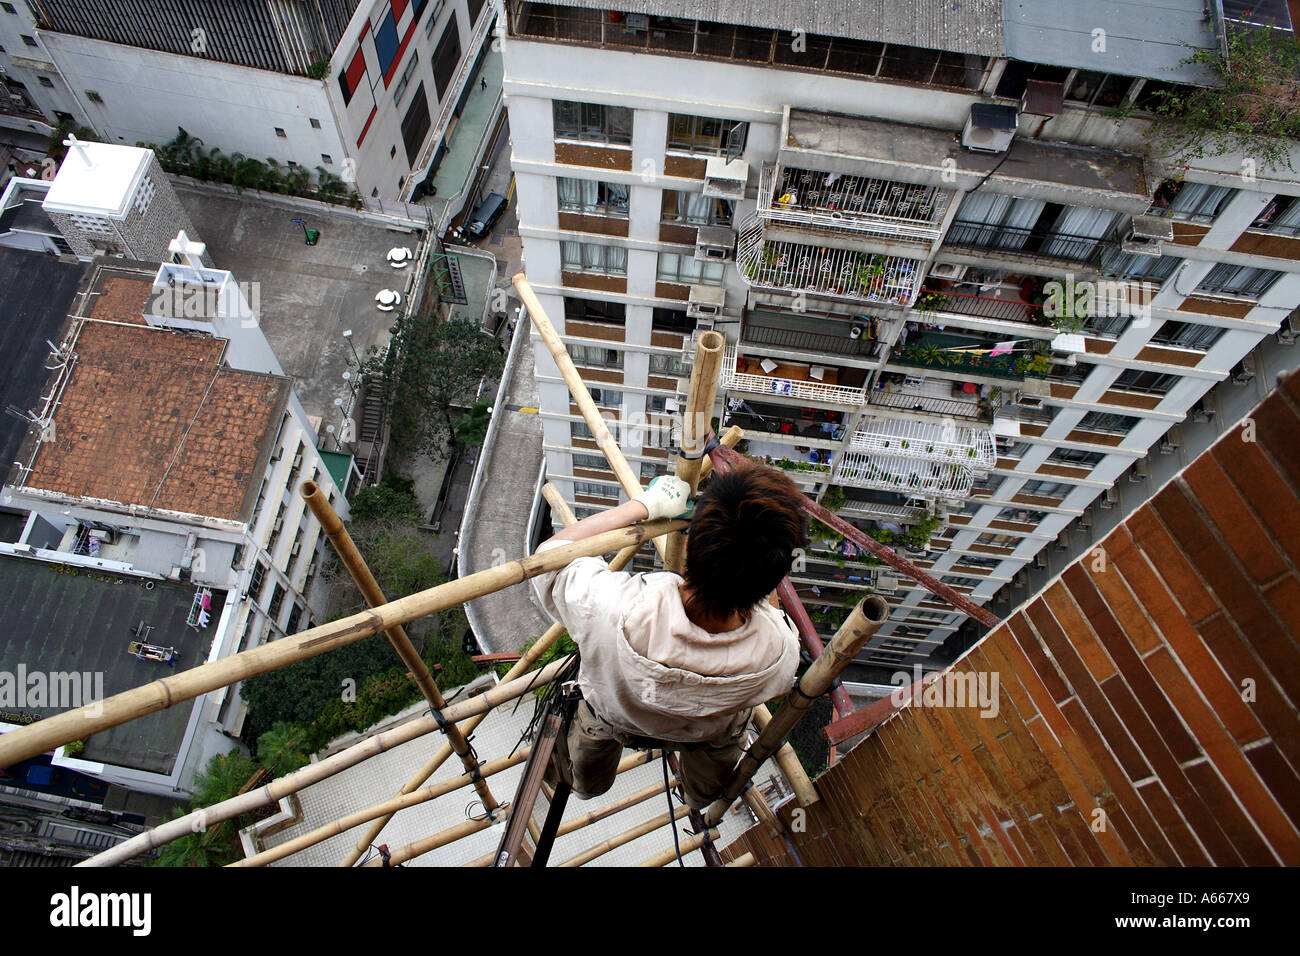 Hong Kong, young man fastens together bamboo while building scaffolding high above the ground - Stock Image